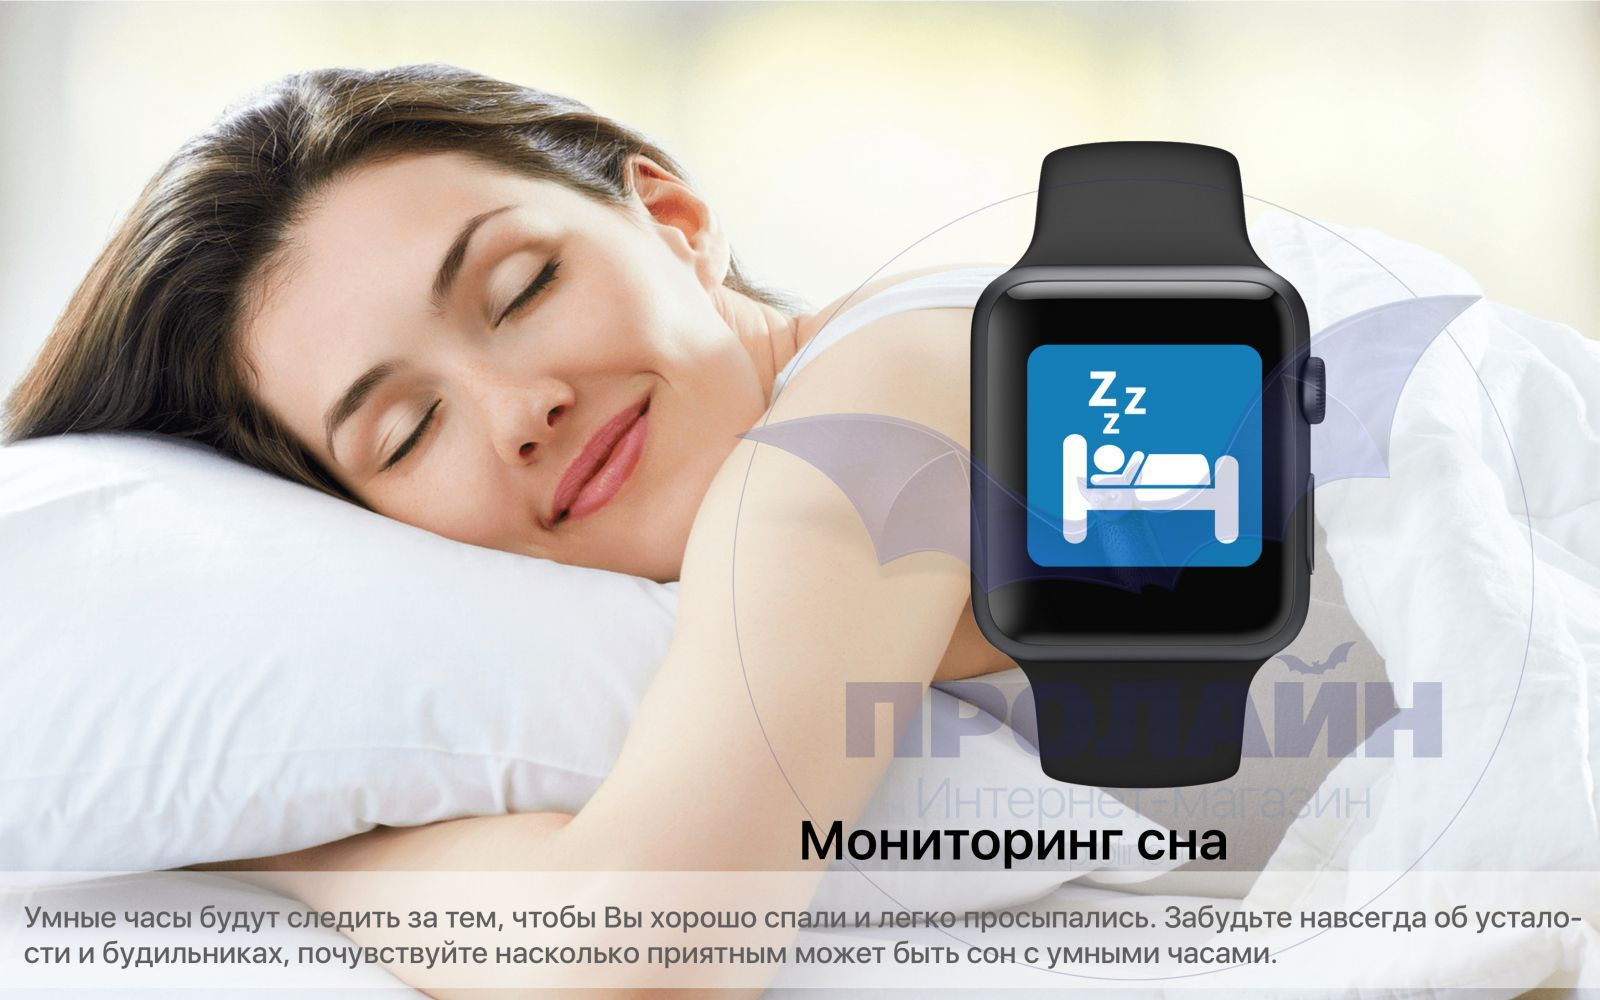 Smart Watch IWO 2 мониторинг сна